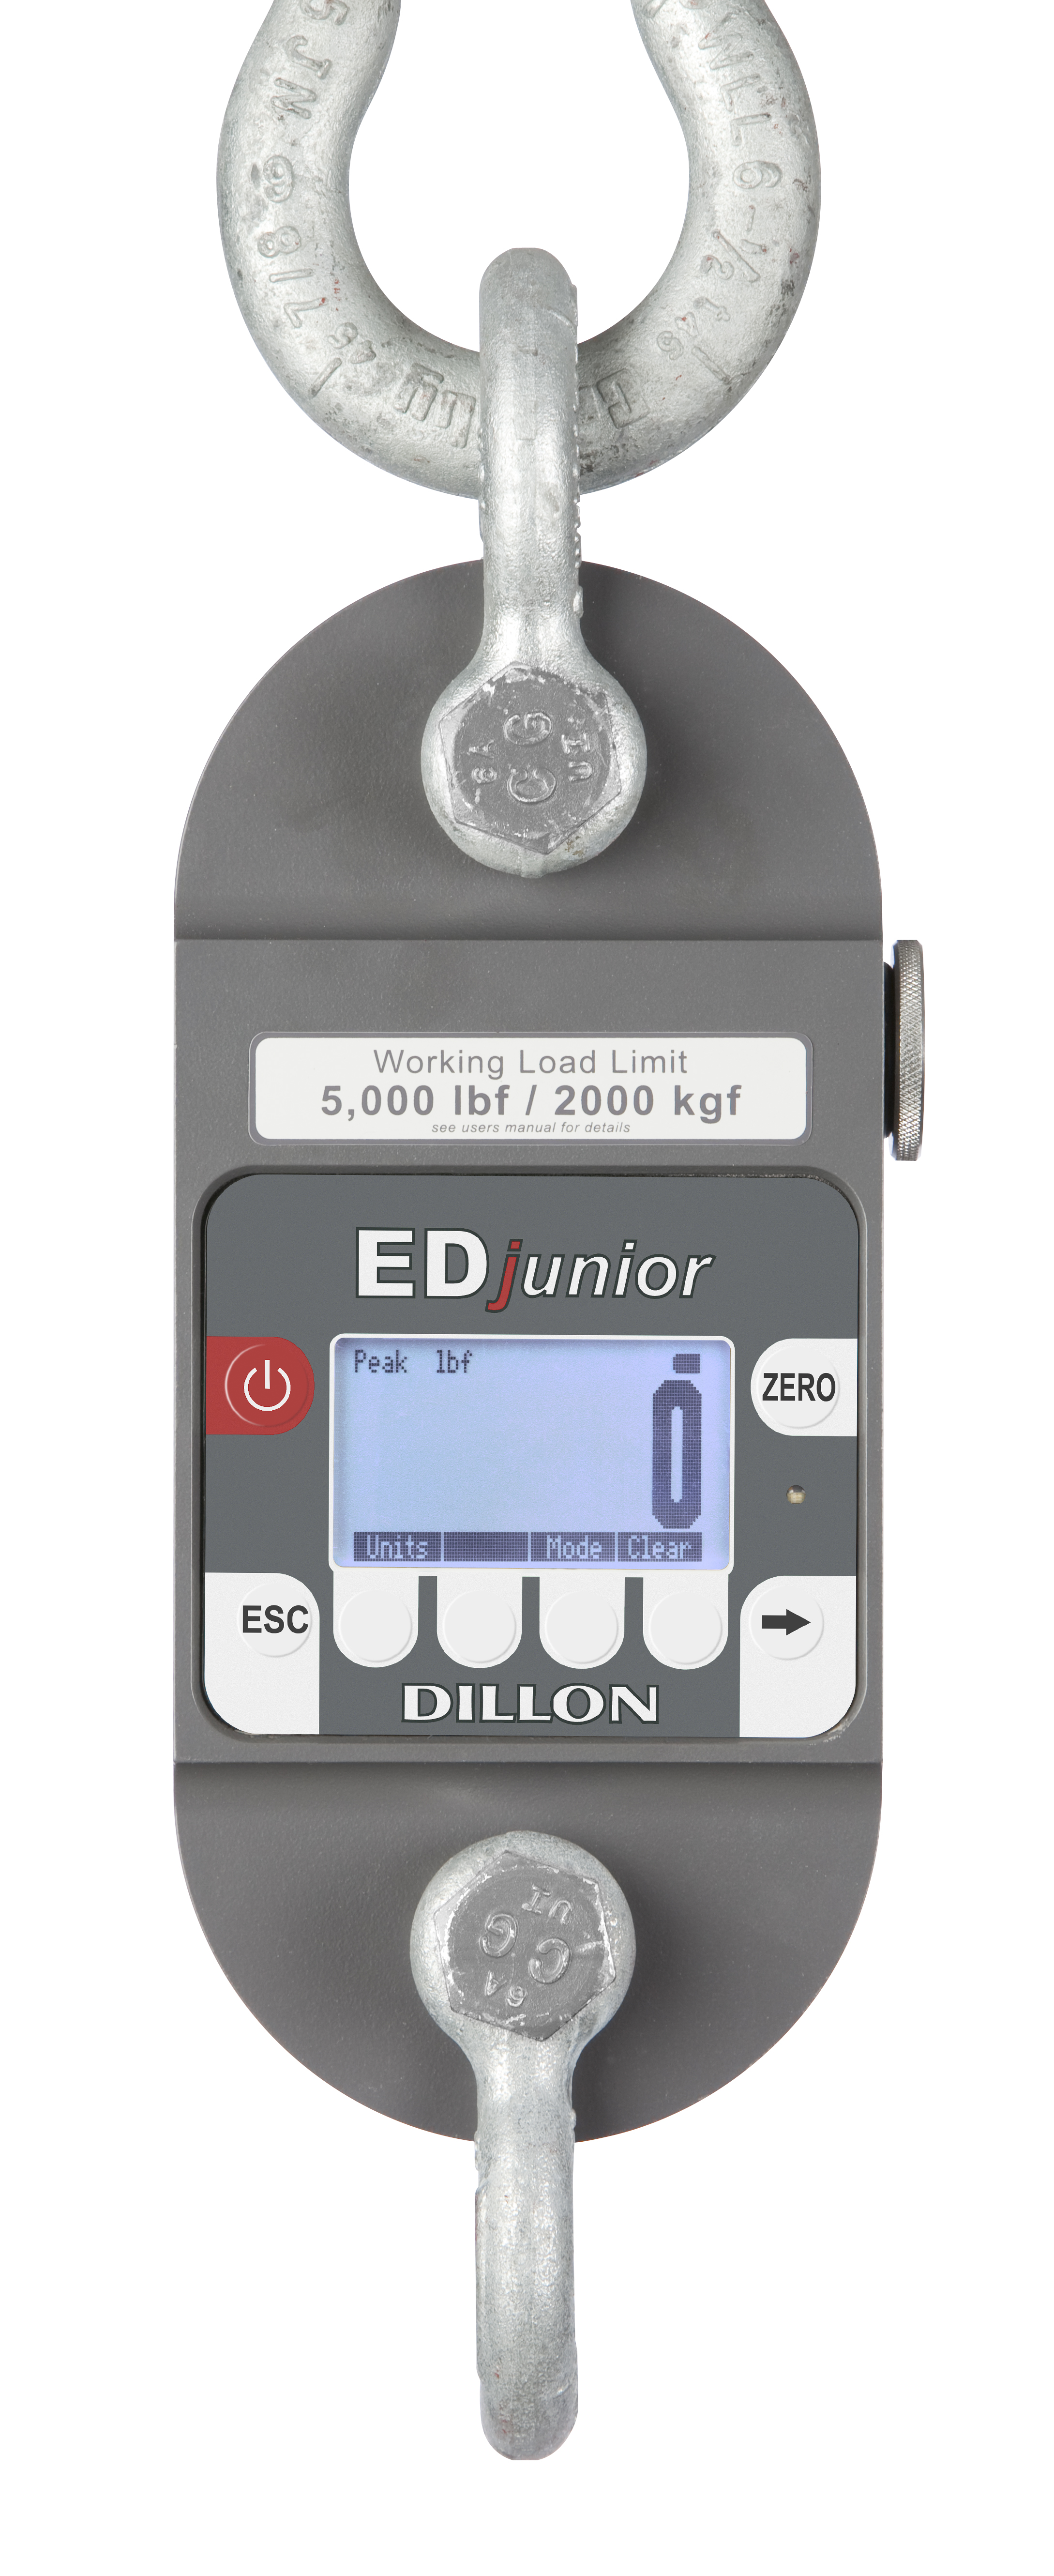 Dillon EDjunior 2014 right edjunior dynamometer scale measuring load cell muncy industries  at gsmx.co